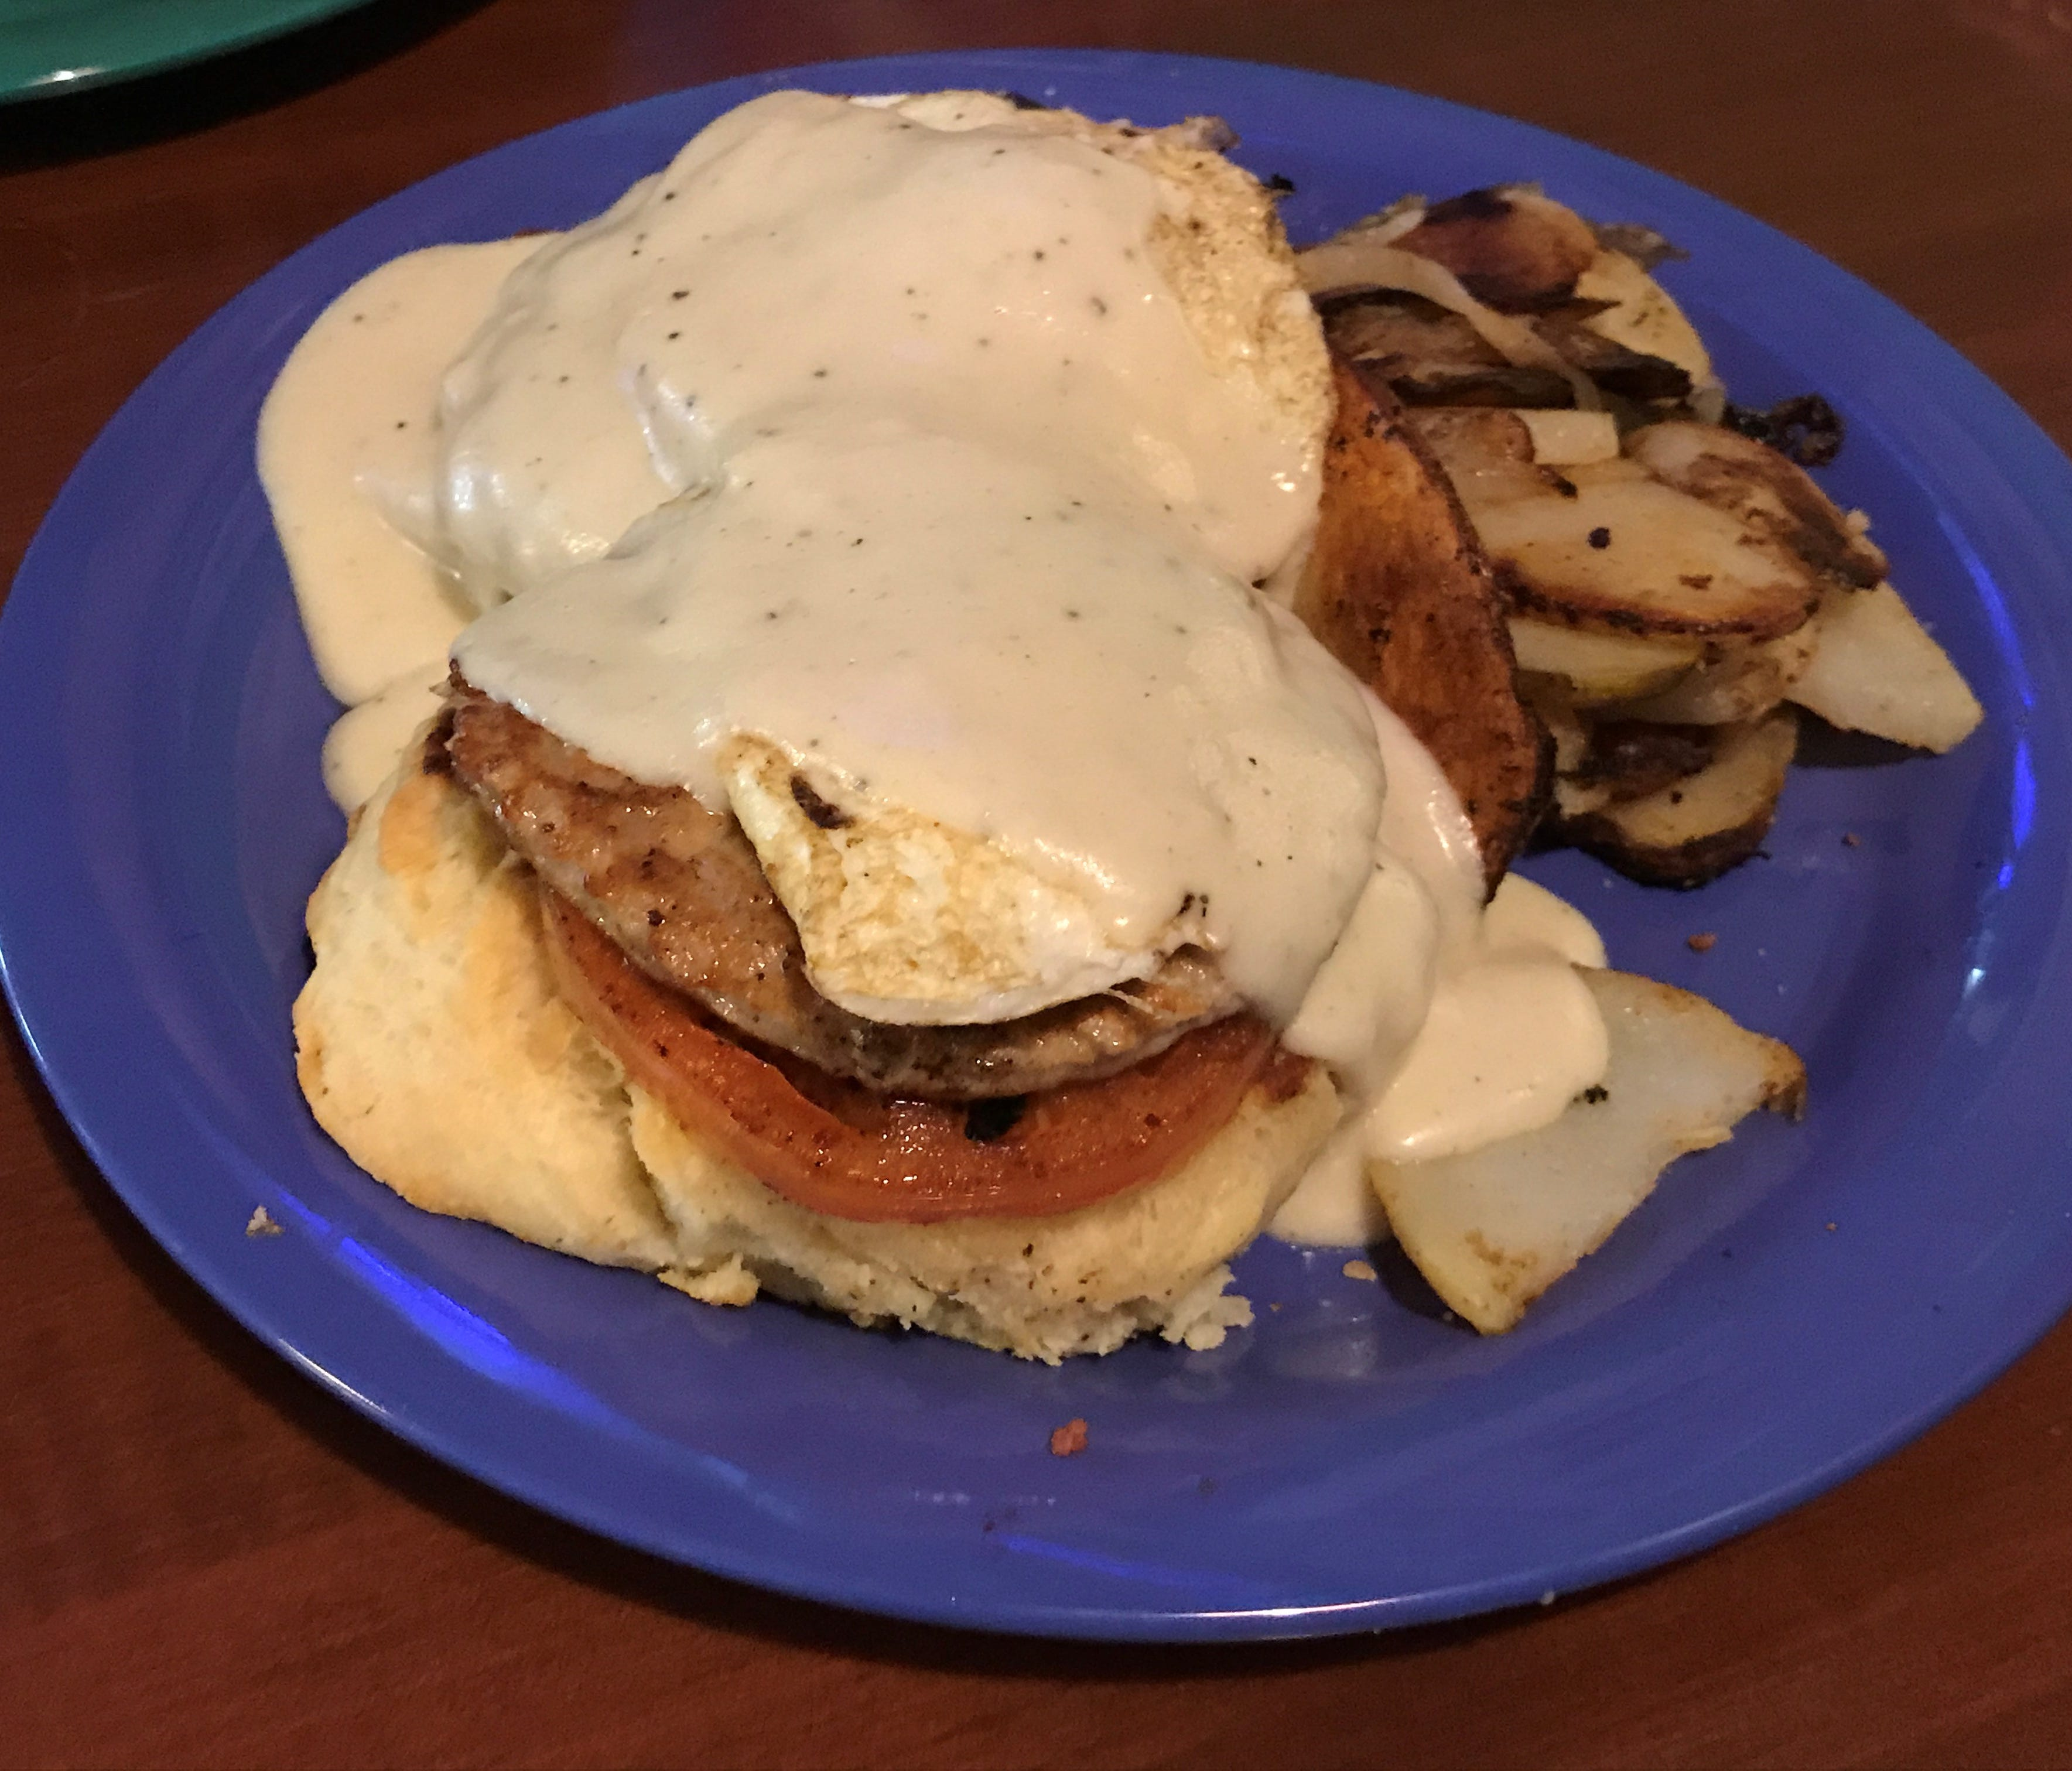 One unique take on a breakfast sandwich starts with a very good biscuit, adds a patty of house-made sausage, grilled tomato, an over easy egg and standout country-style gravy, plus a choice of a side, such as hash browns.